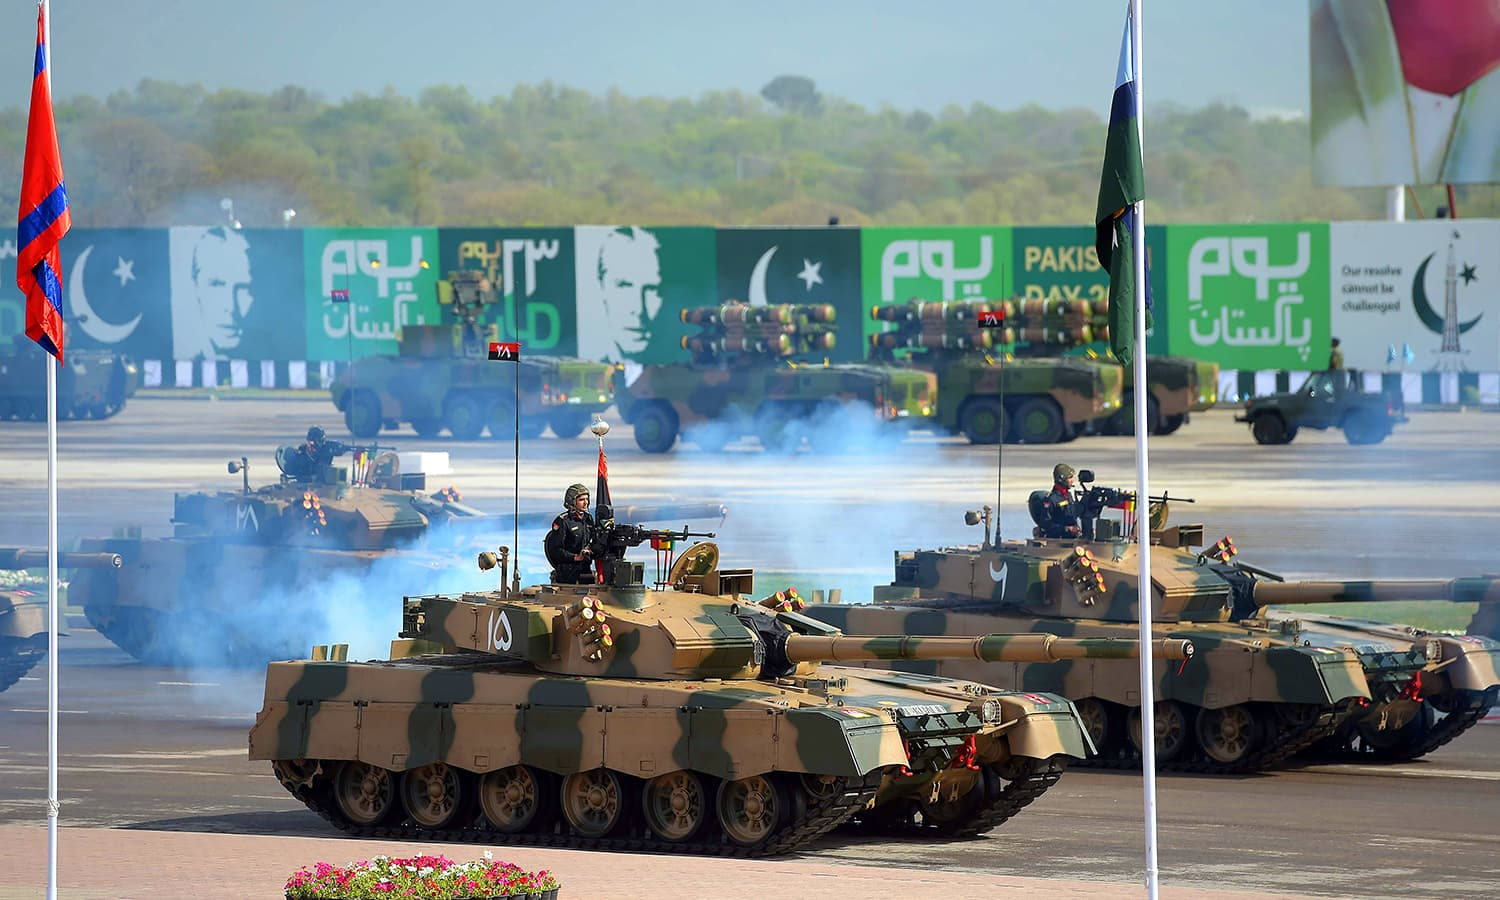 Military personnel ride on Al-Khalid tanks during the military parade. ─ AFP